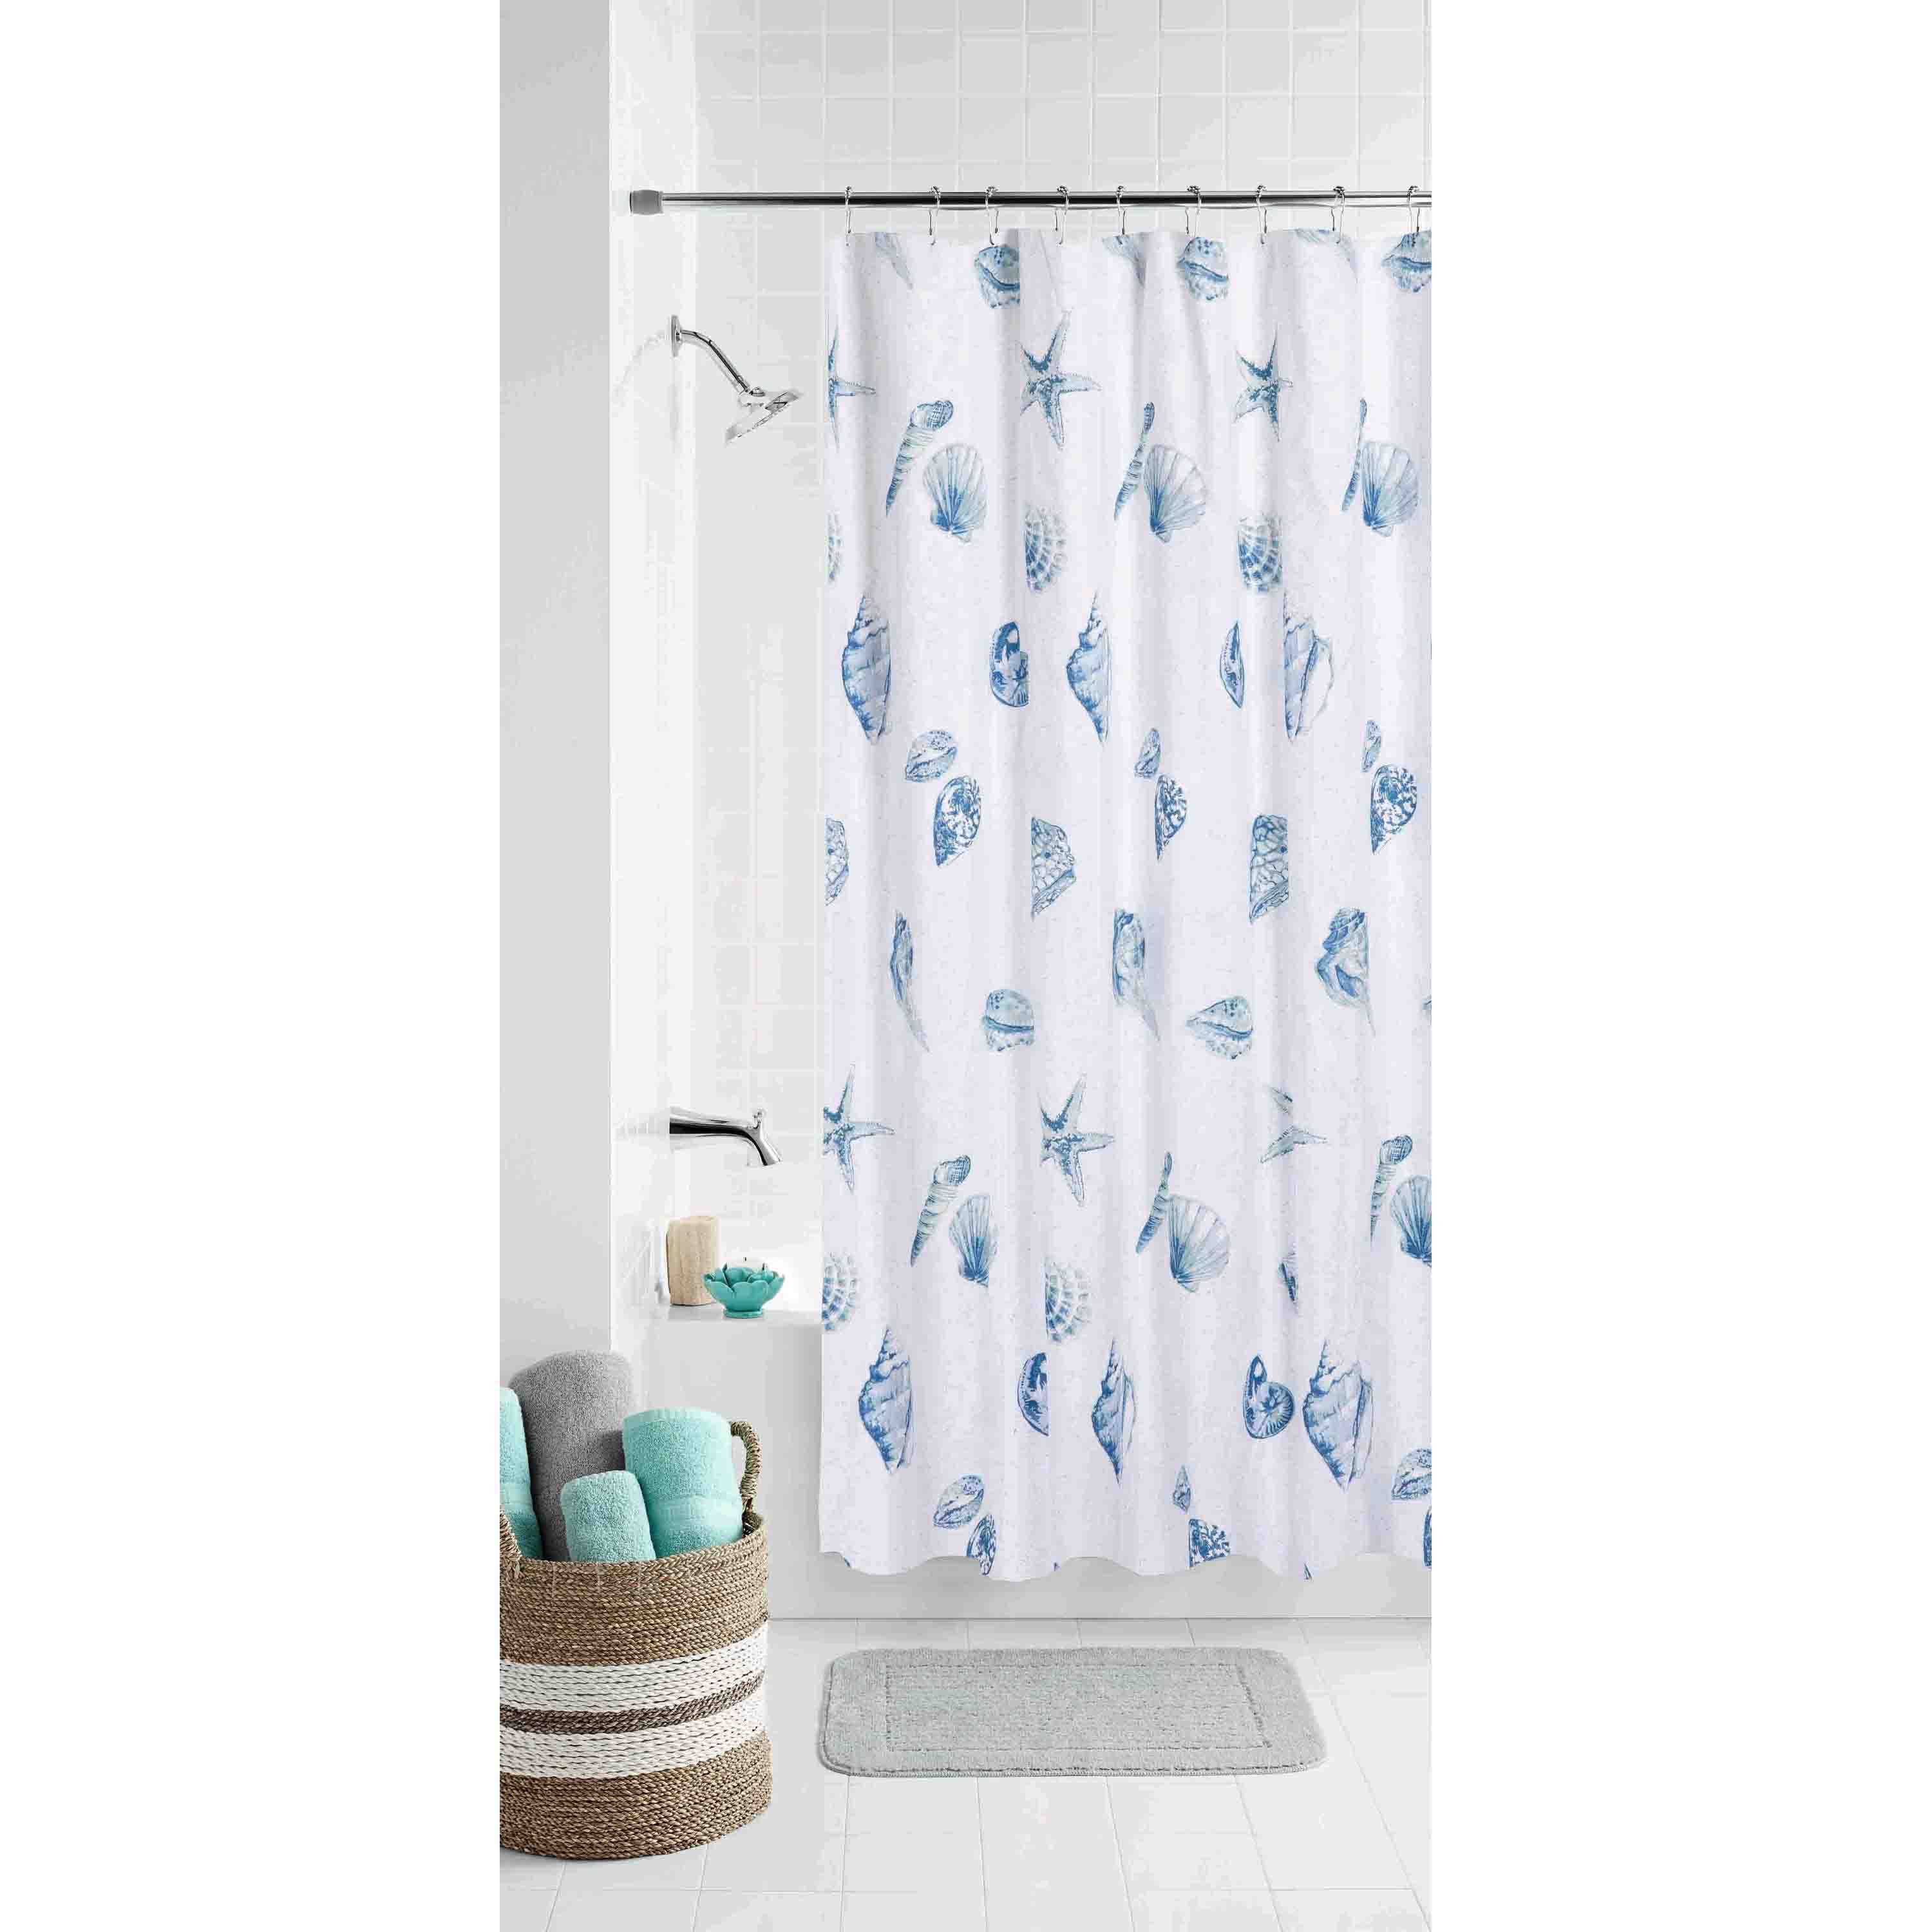 Mainstay Seashell Toss Coordinating Fabric Shower Curtain